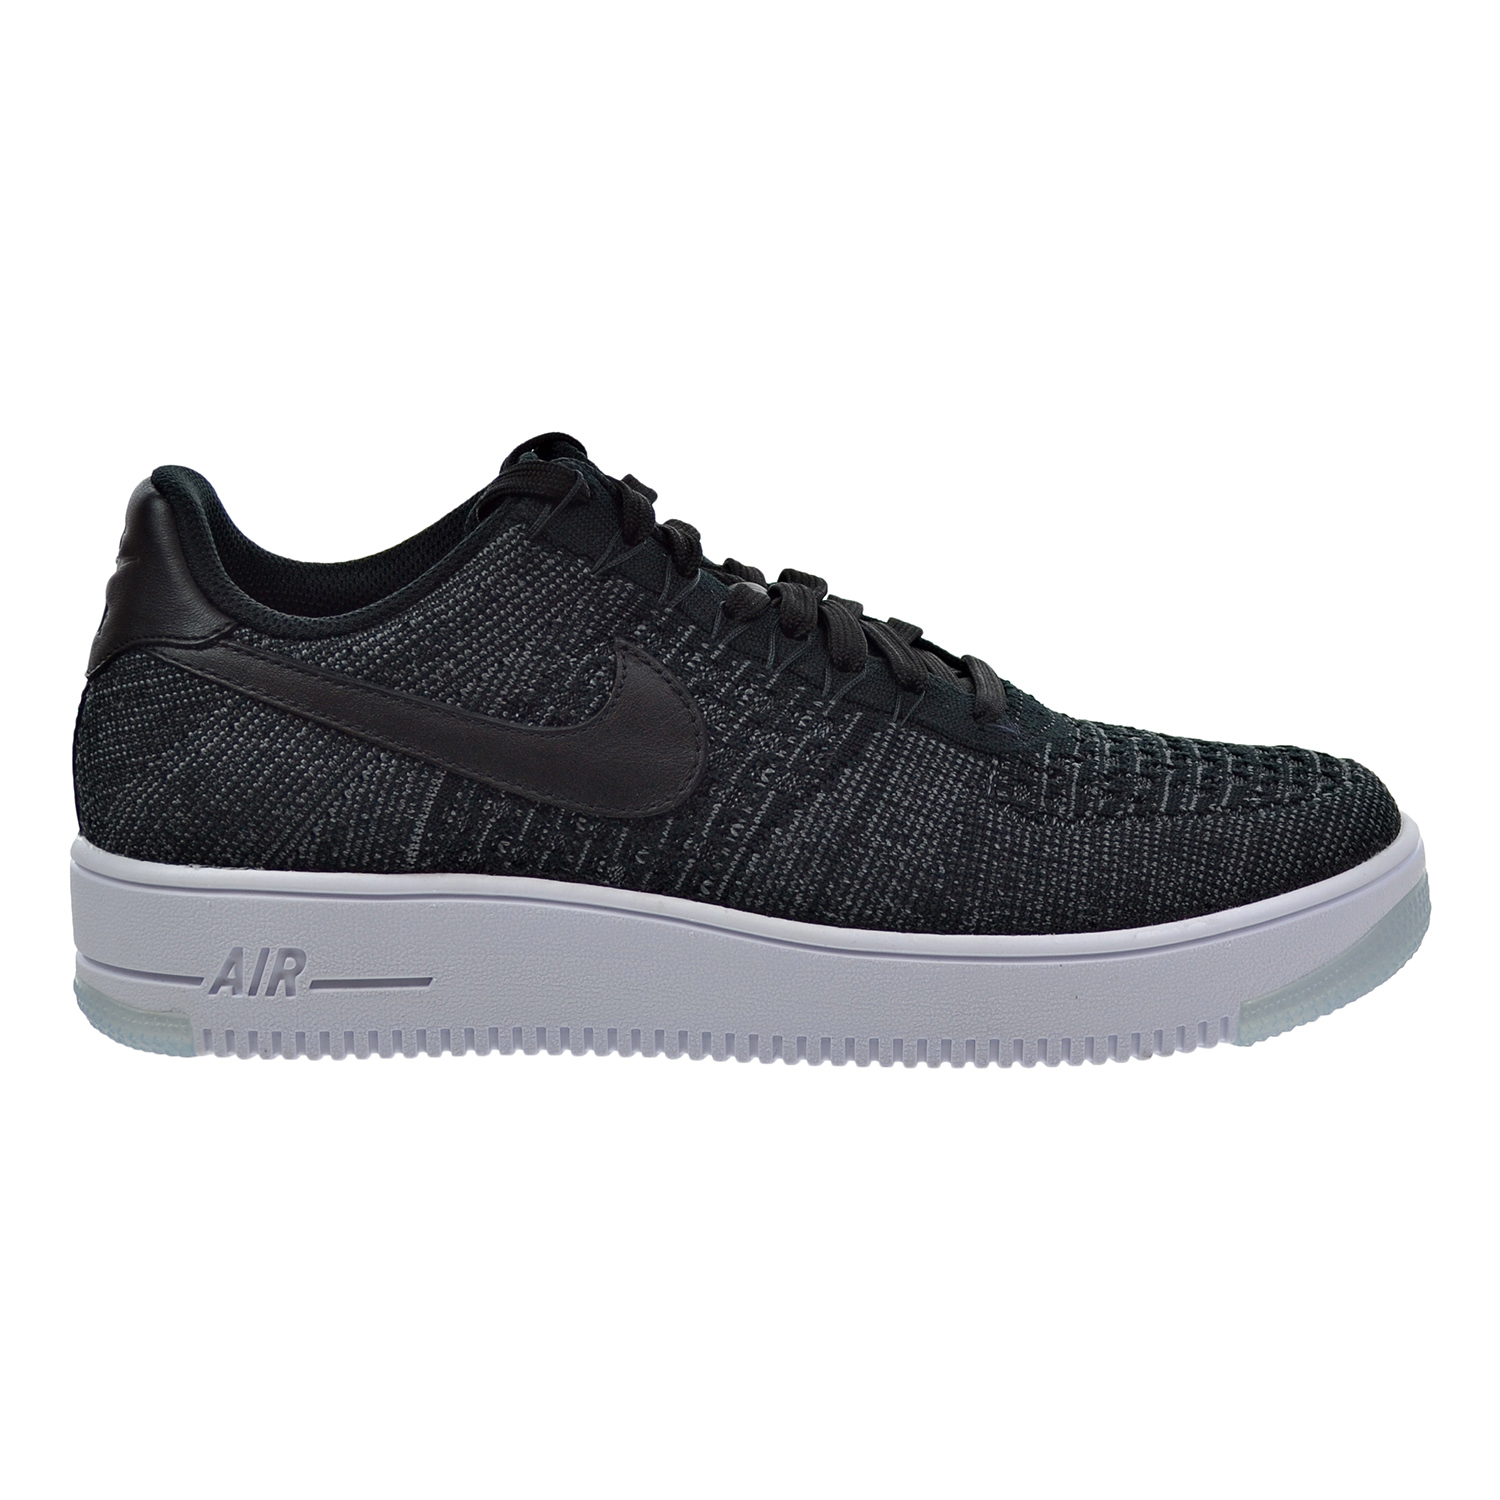 air force 1 black and grey ultra flyknit shoes the river